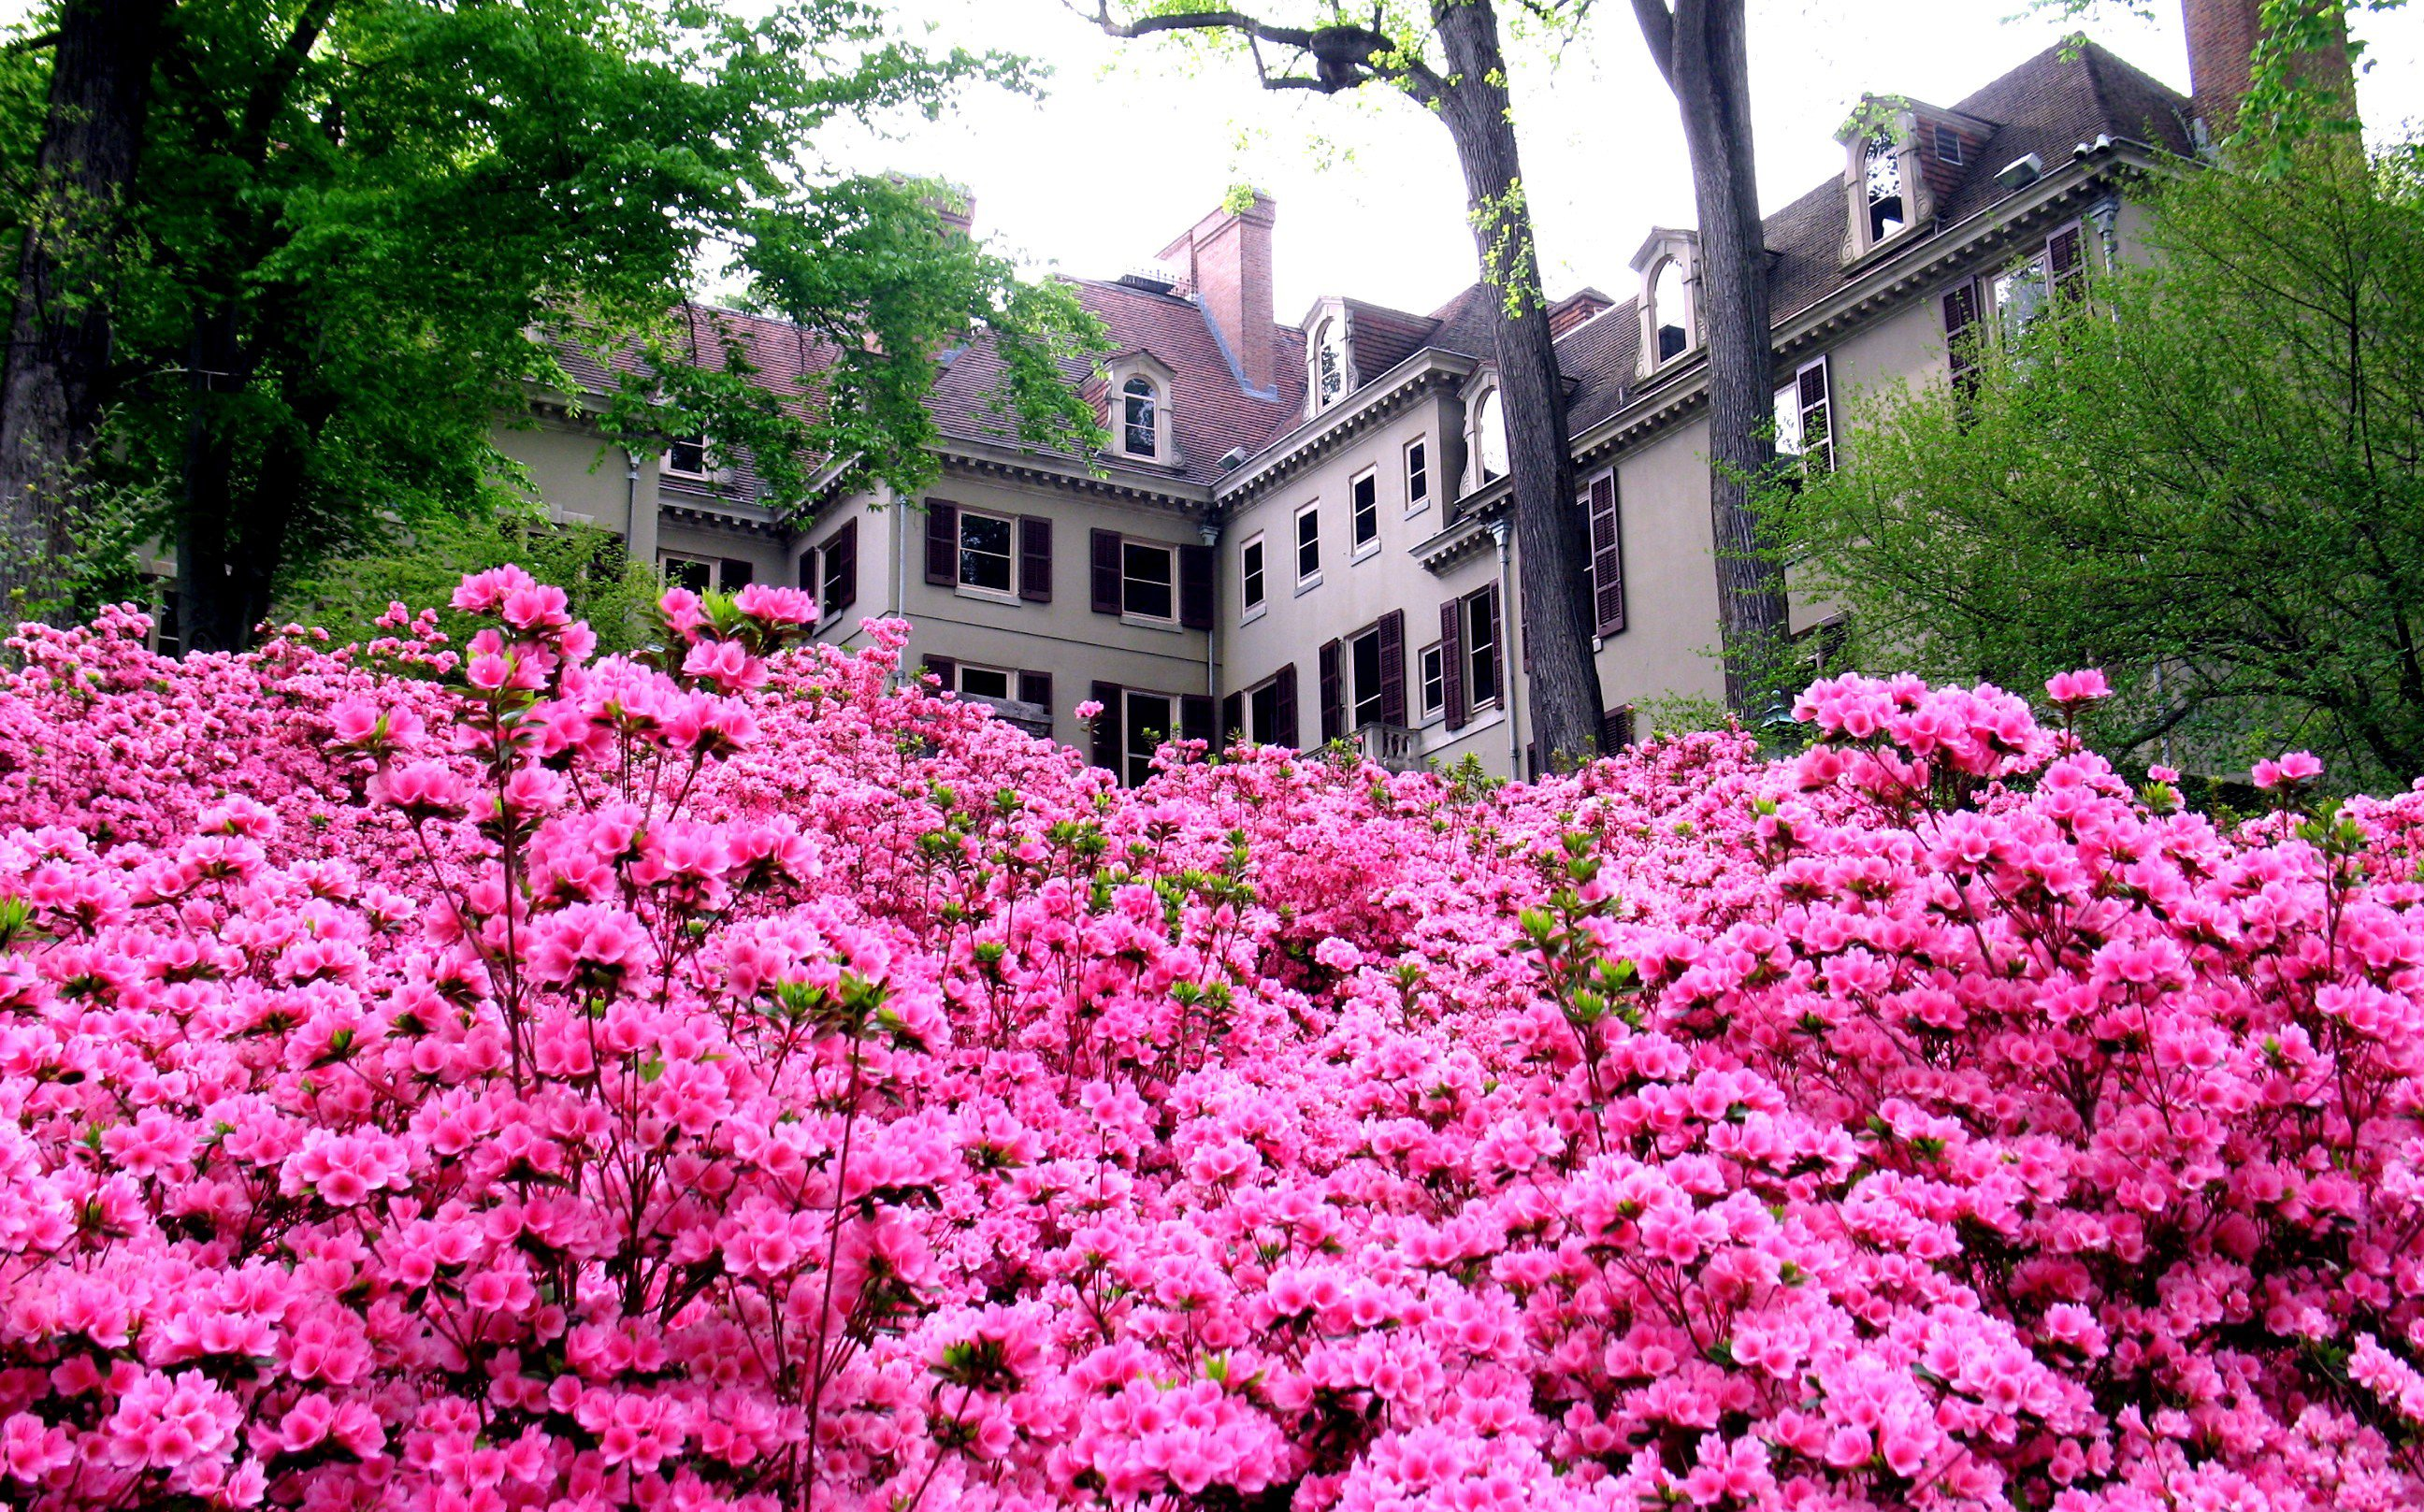 House with Blooms Winterthur Museum